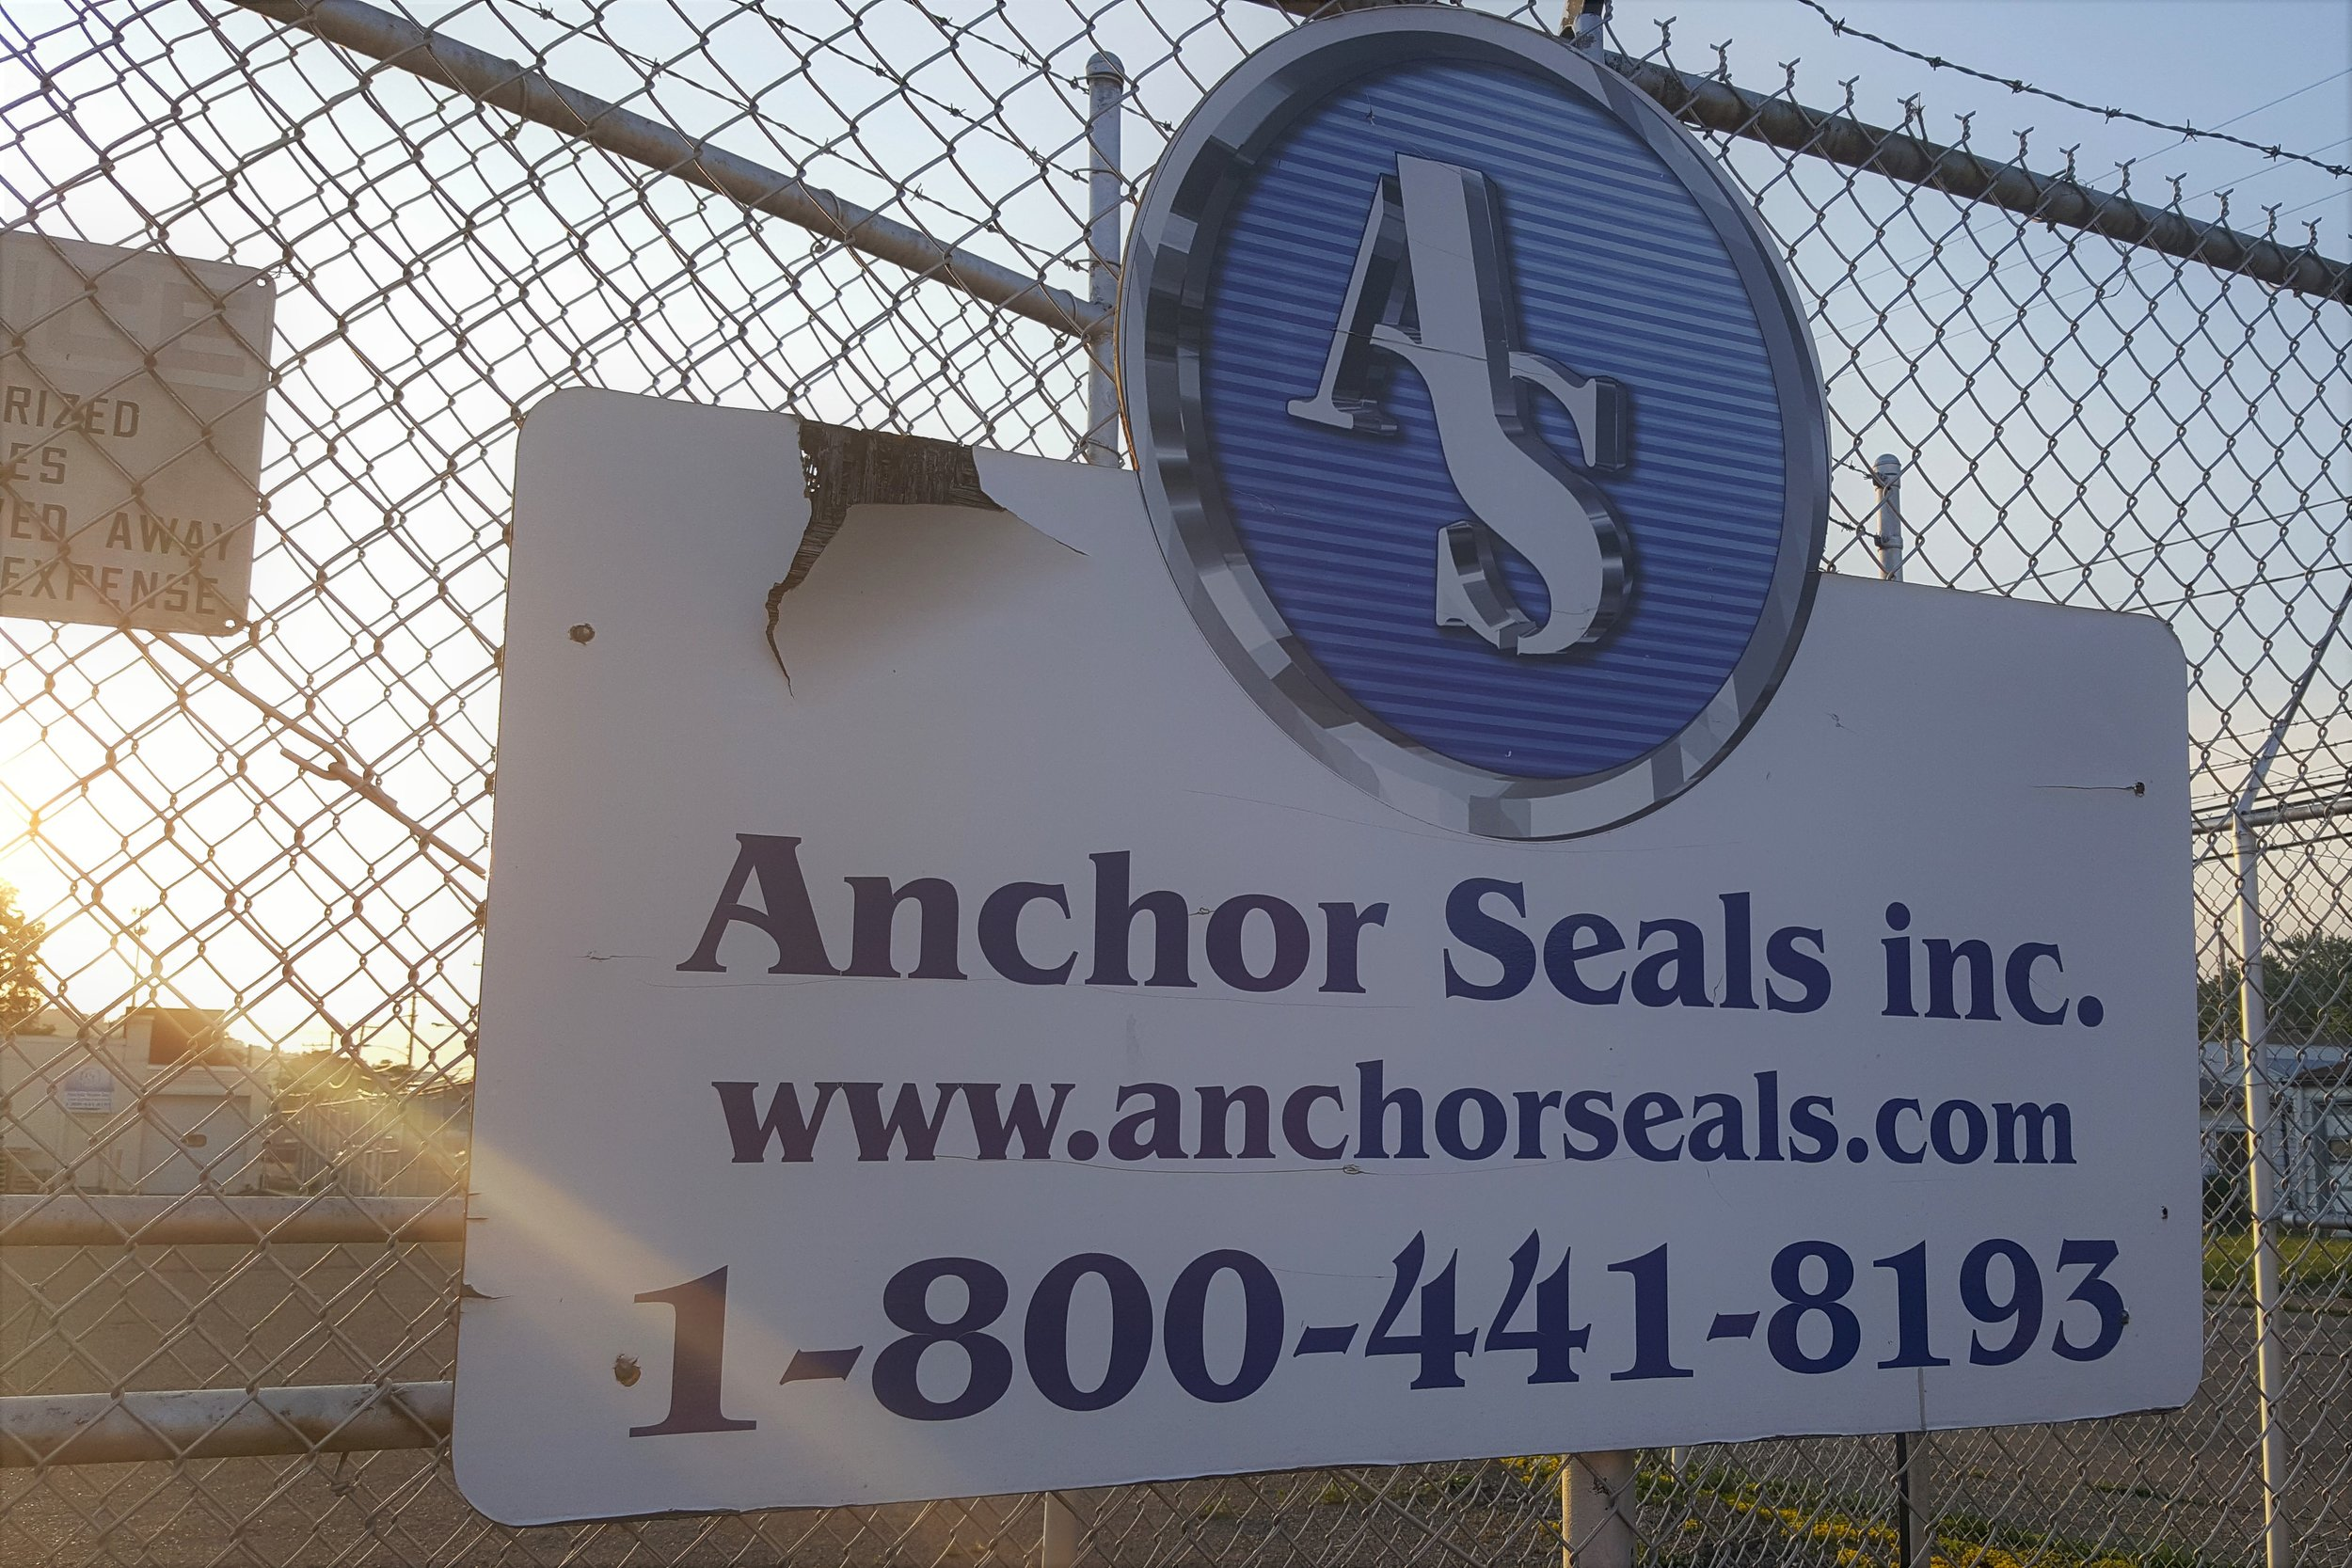 Anchor Seals - 920 2nd Ave, Suite 1, (412) 299-6900